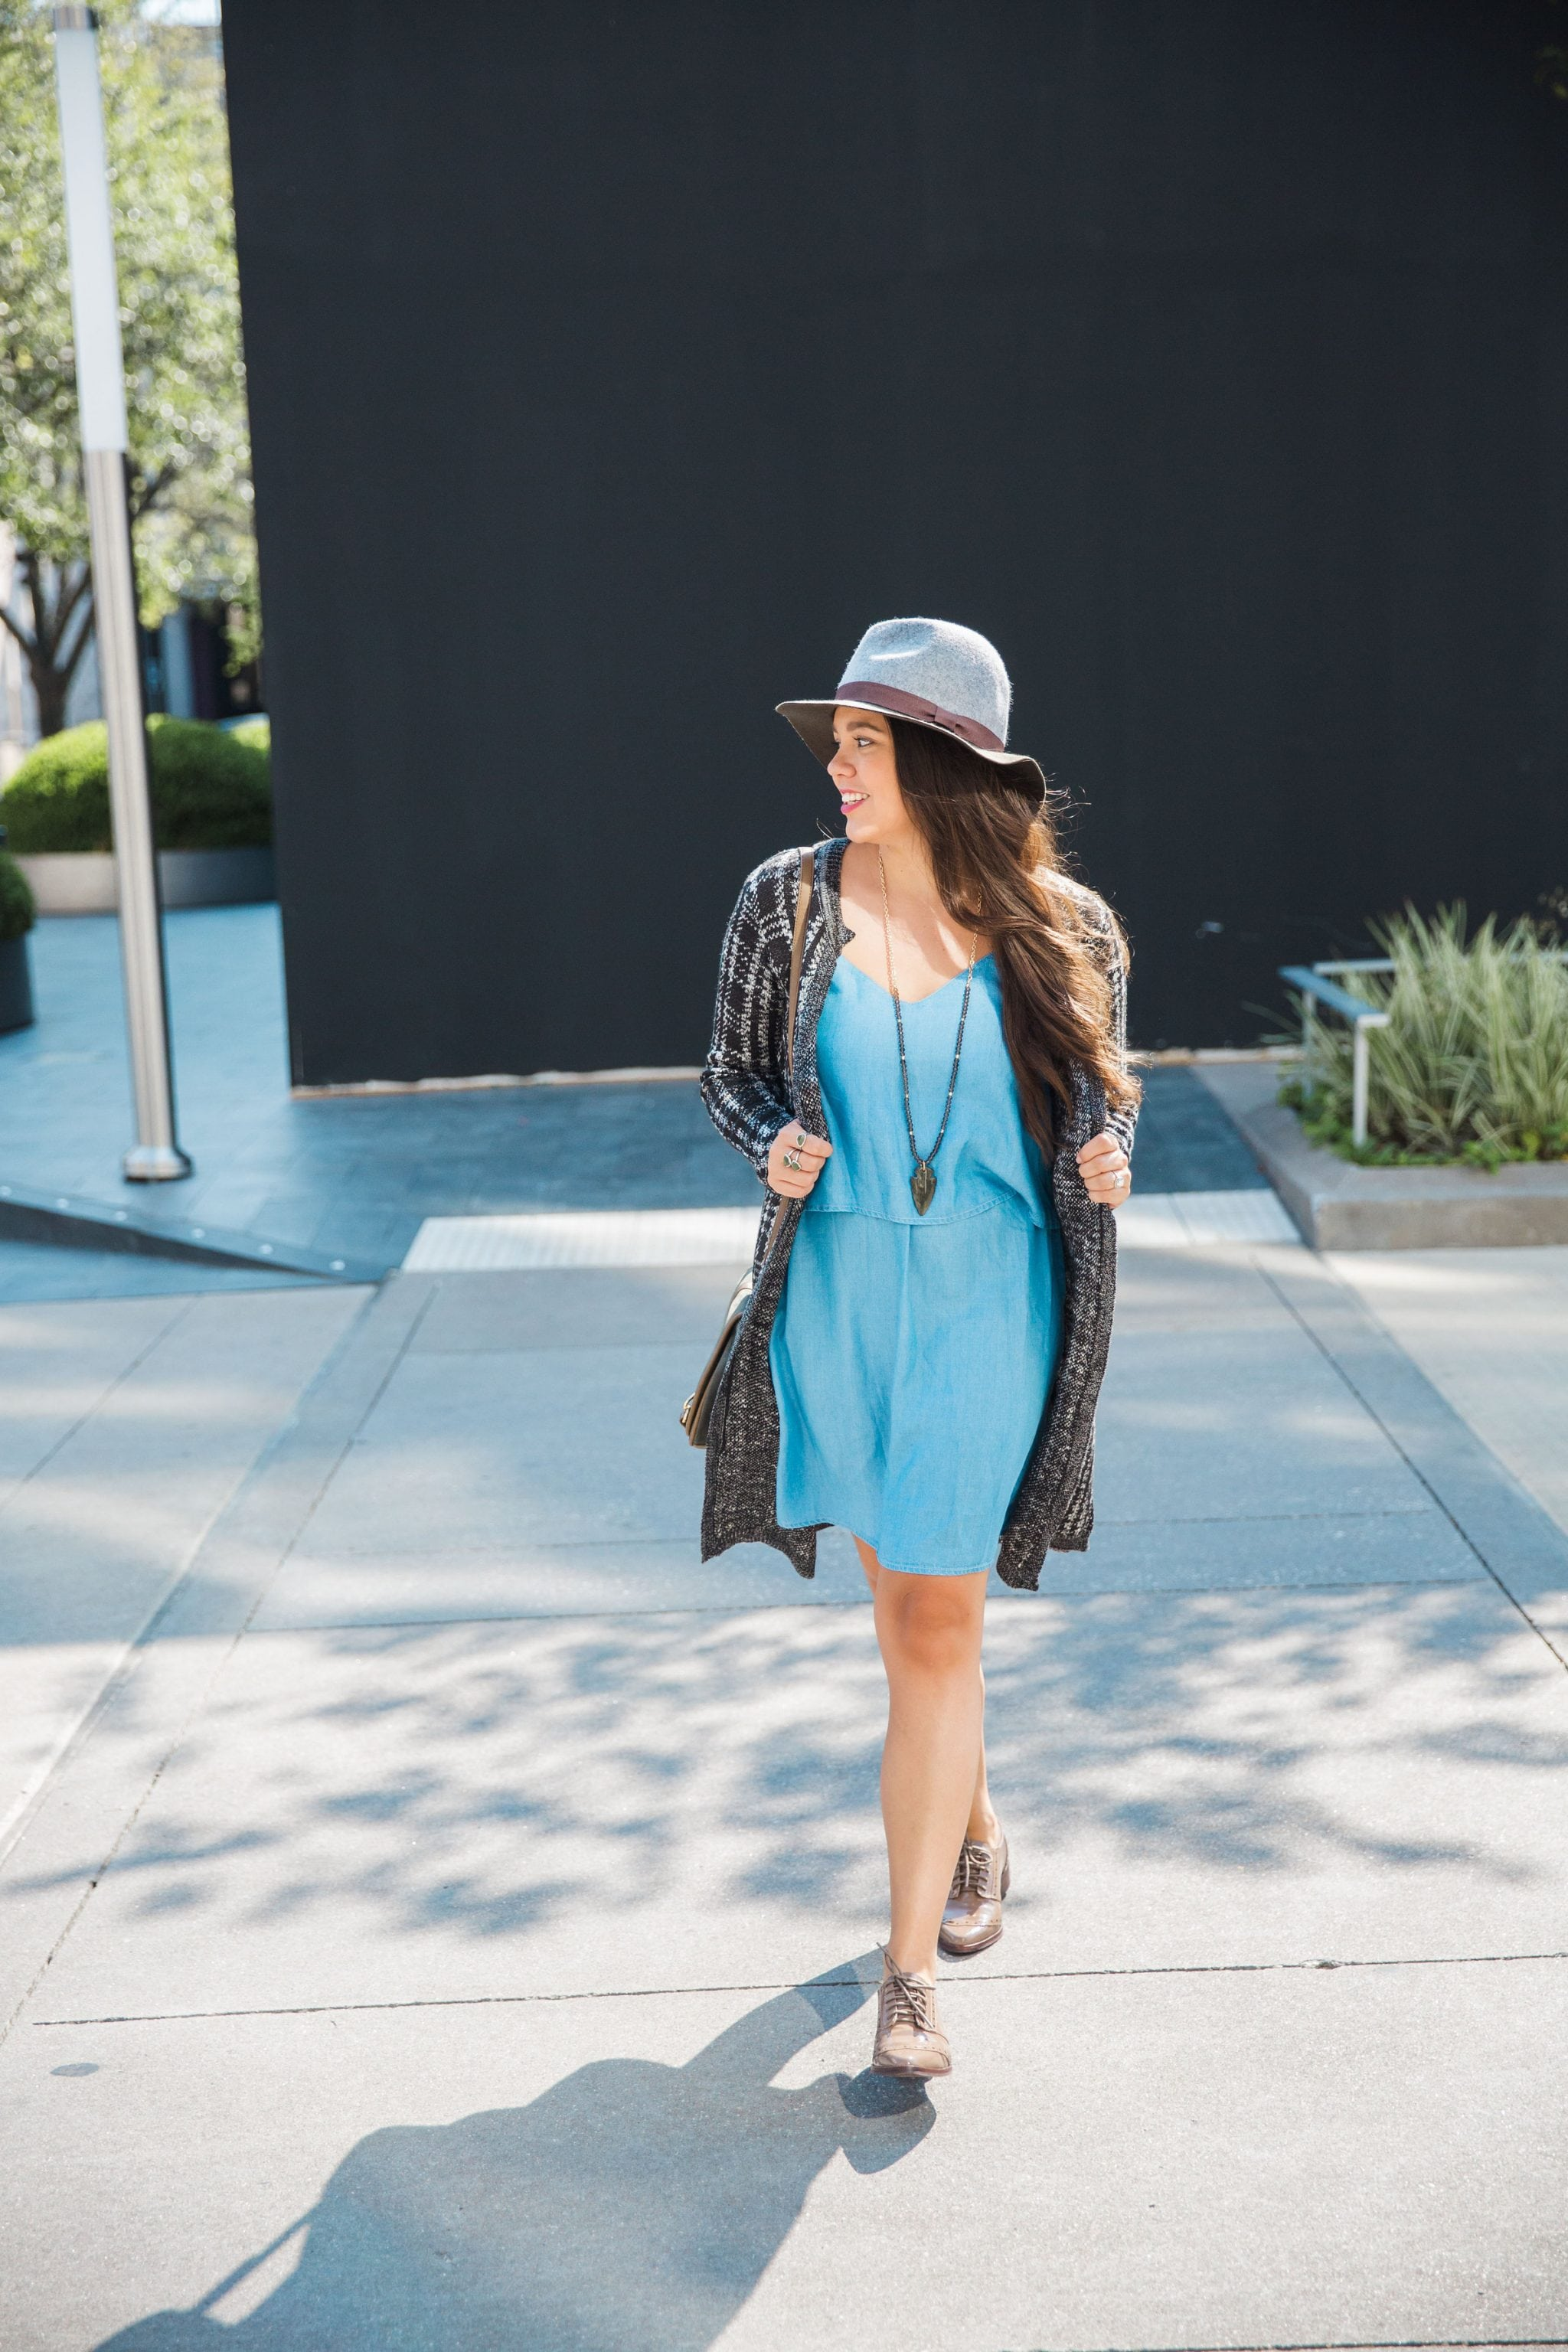 Fedora and duster cardigan for fall